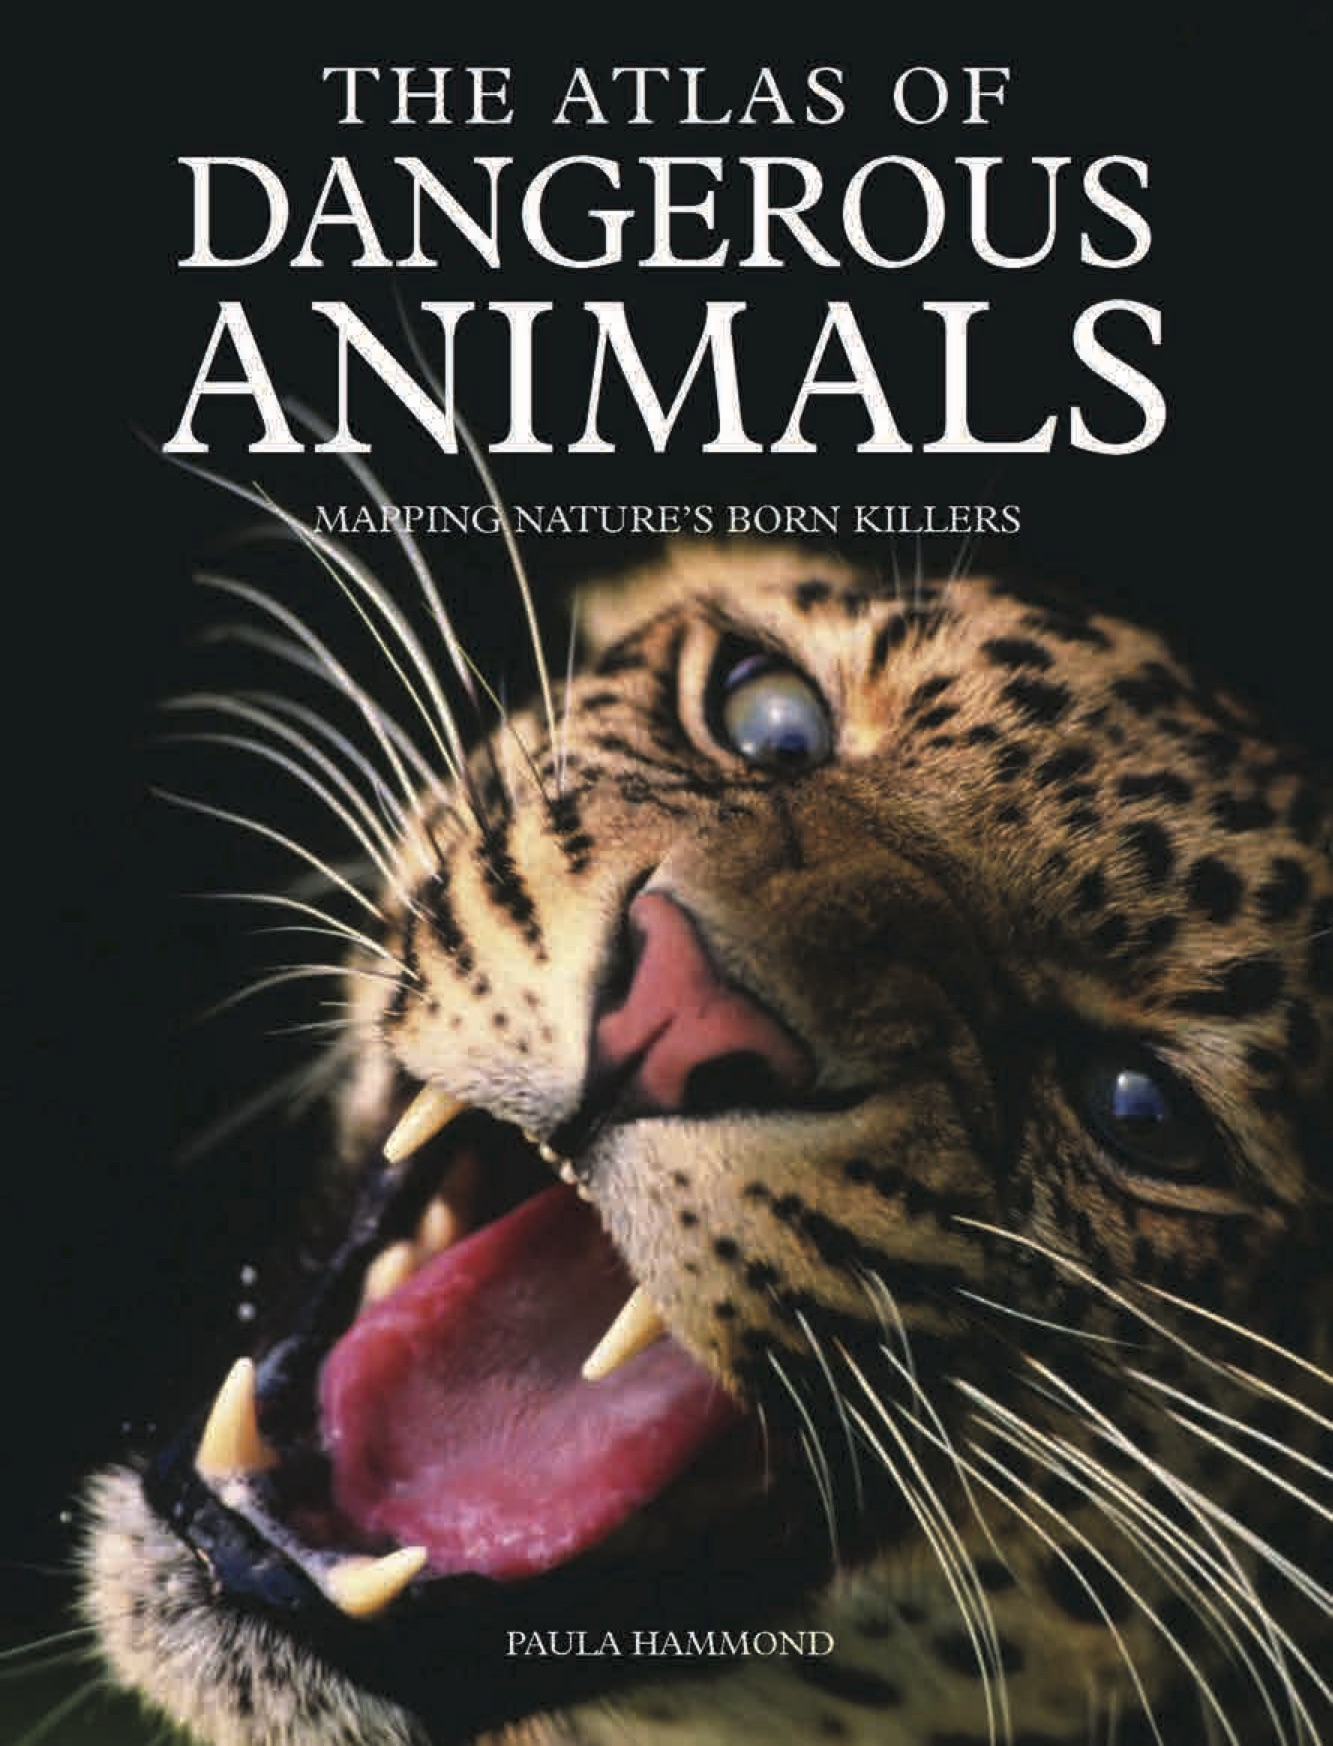 The Atlas of Dangerous Animals